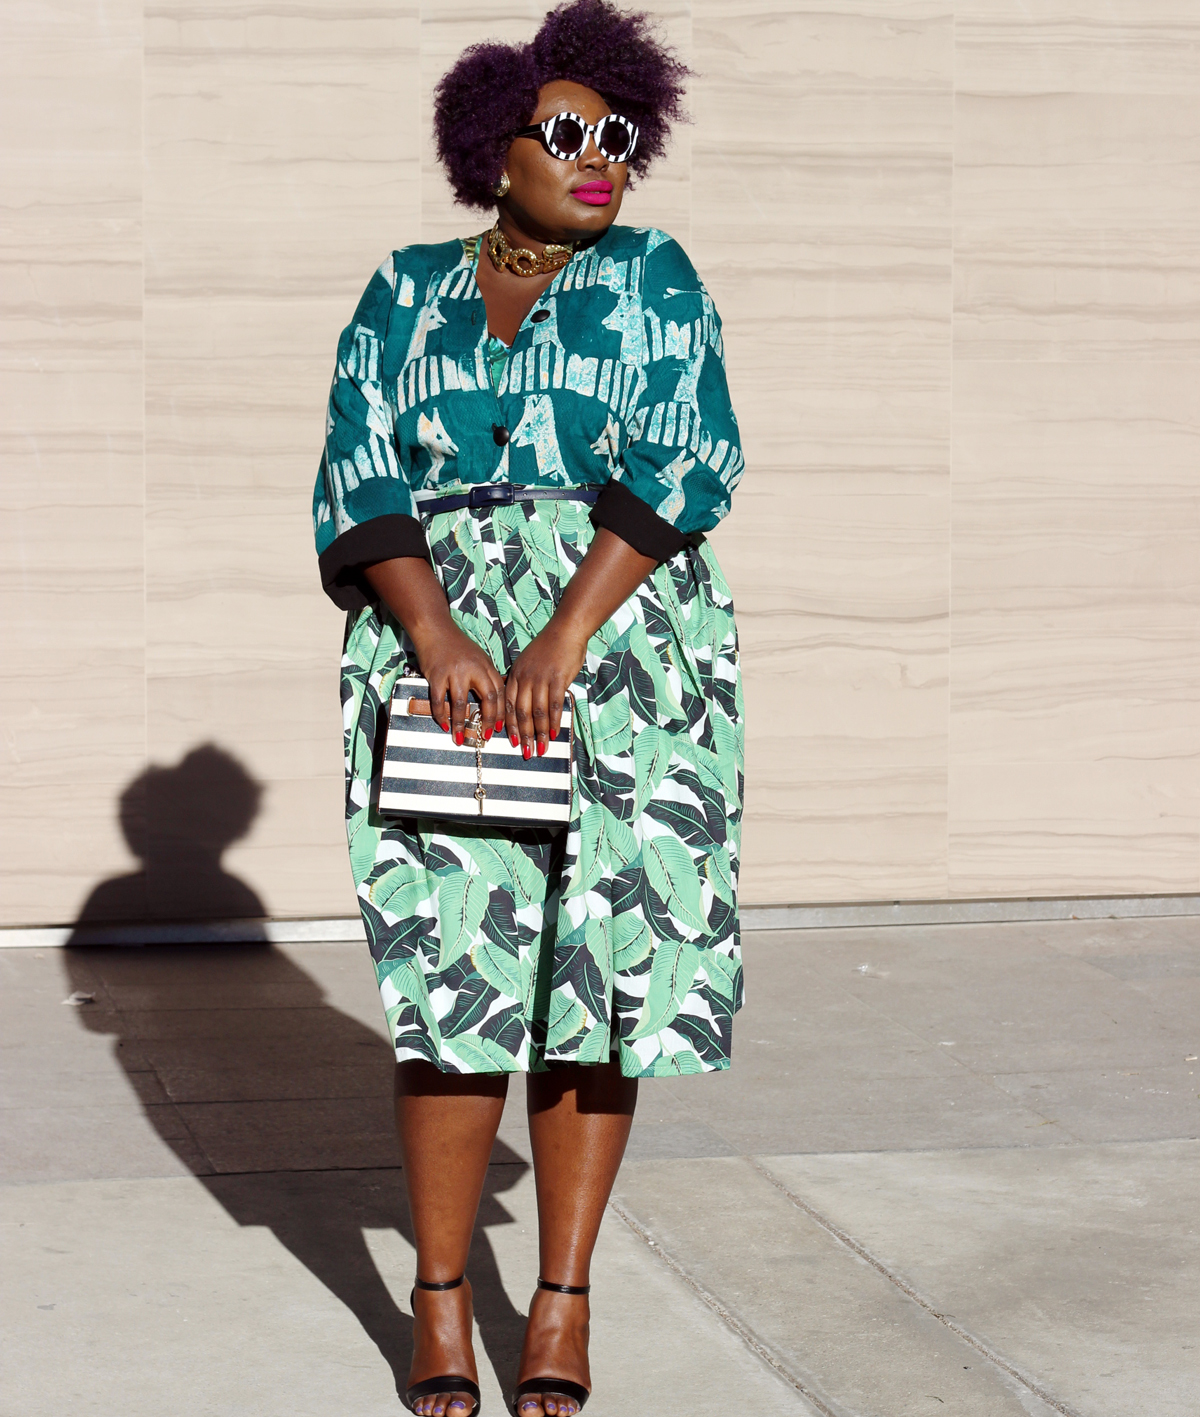 plus size style fashion week outfit fashion week street style 04